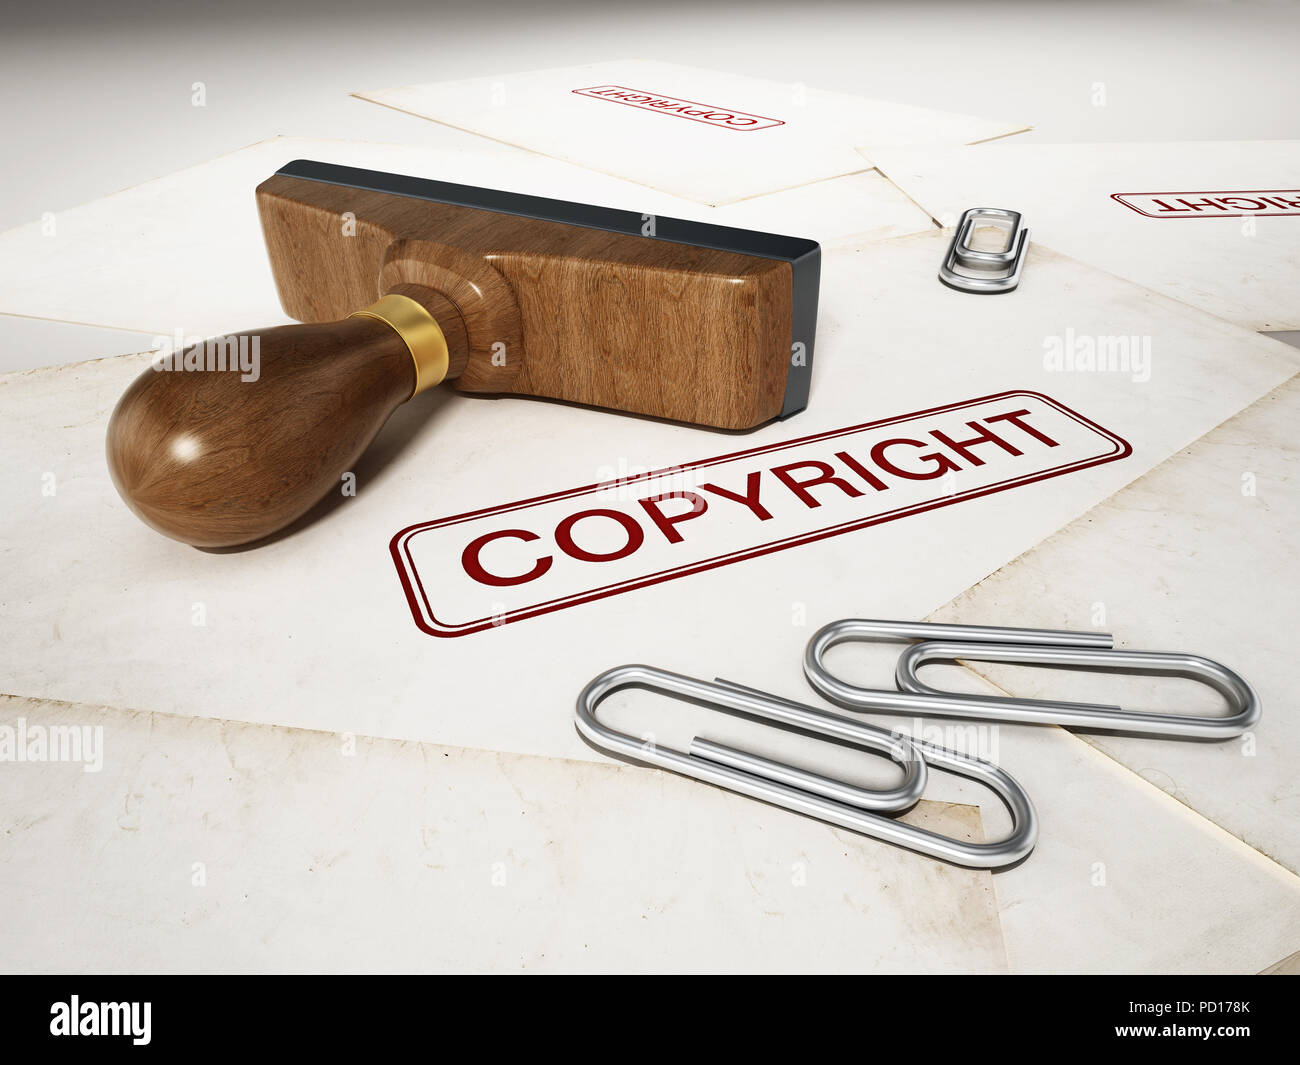 Copyright stamp standing on documents. 3D illustration. - Stock Image